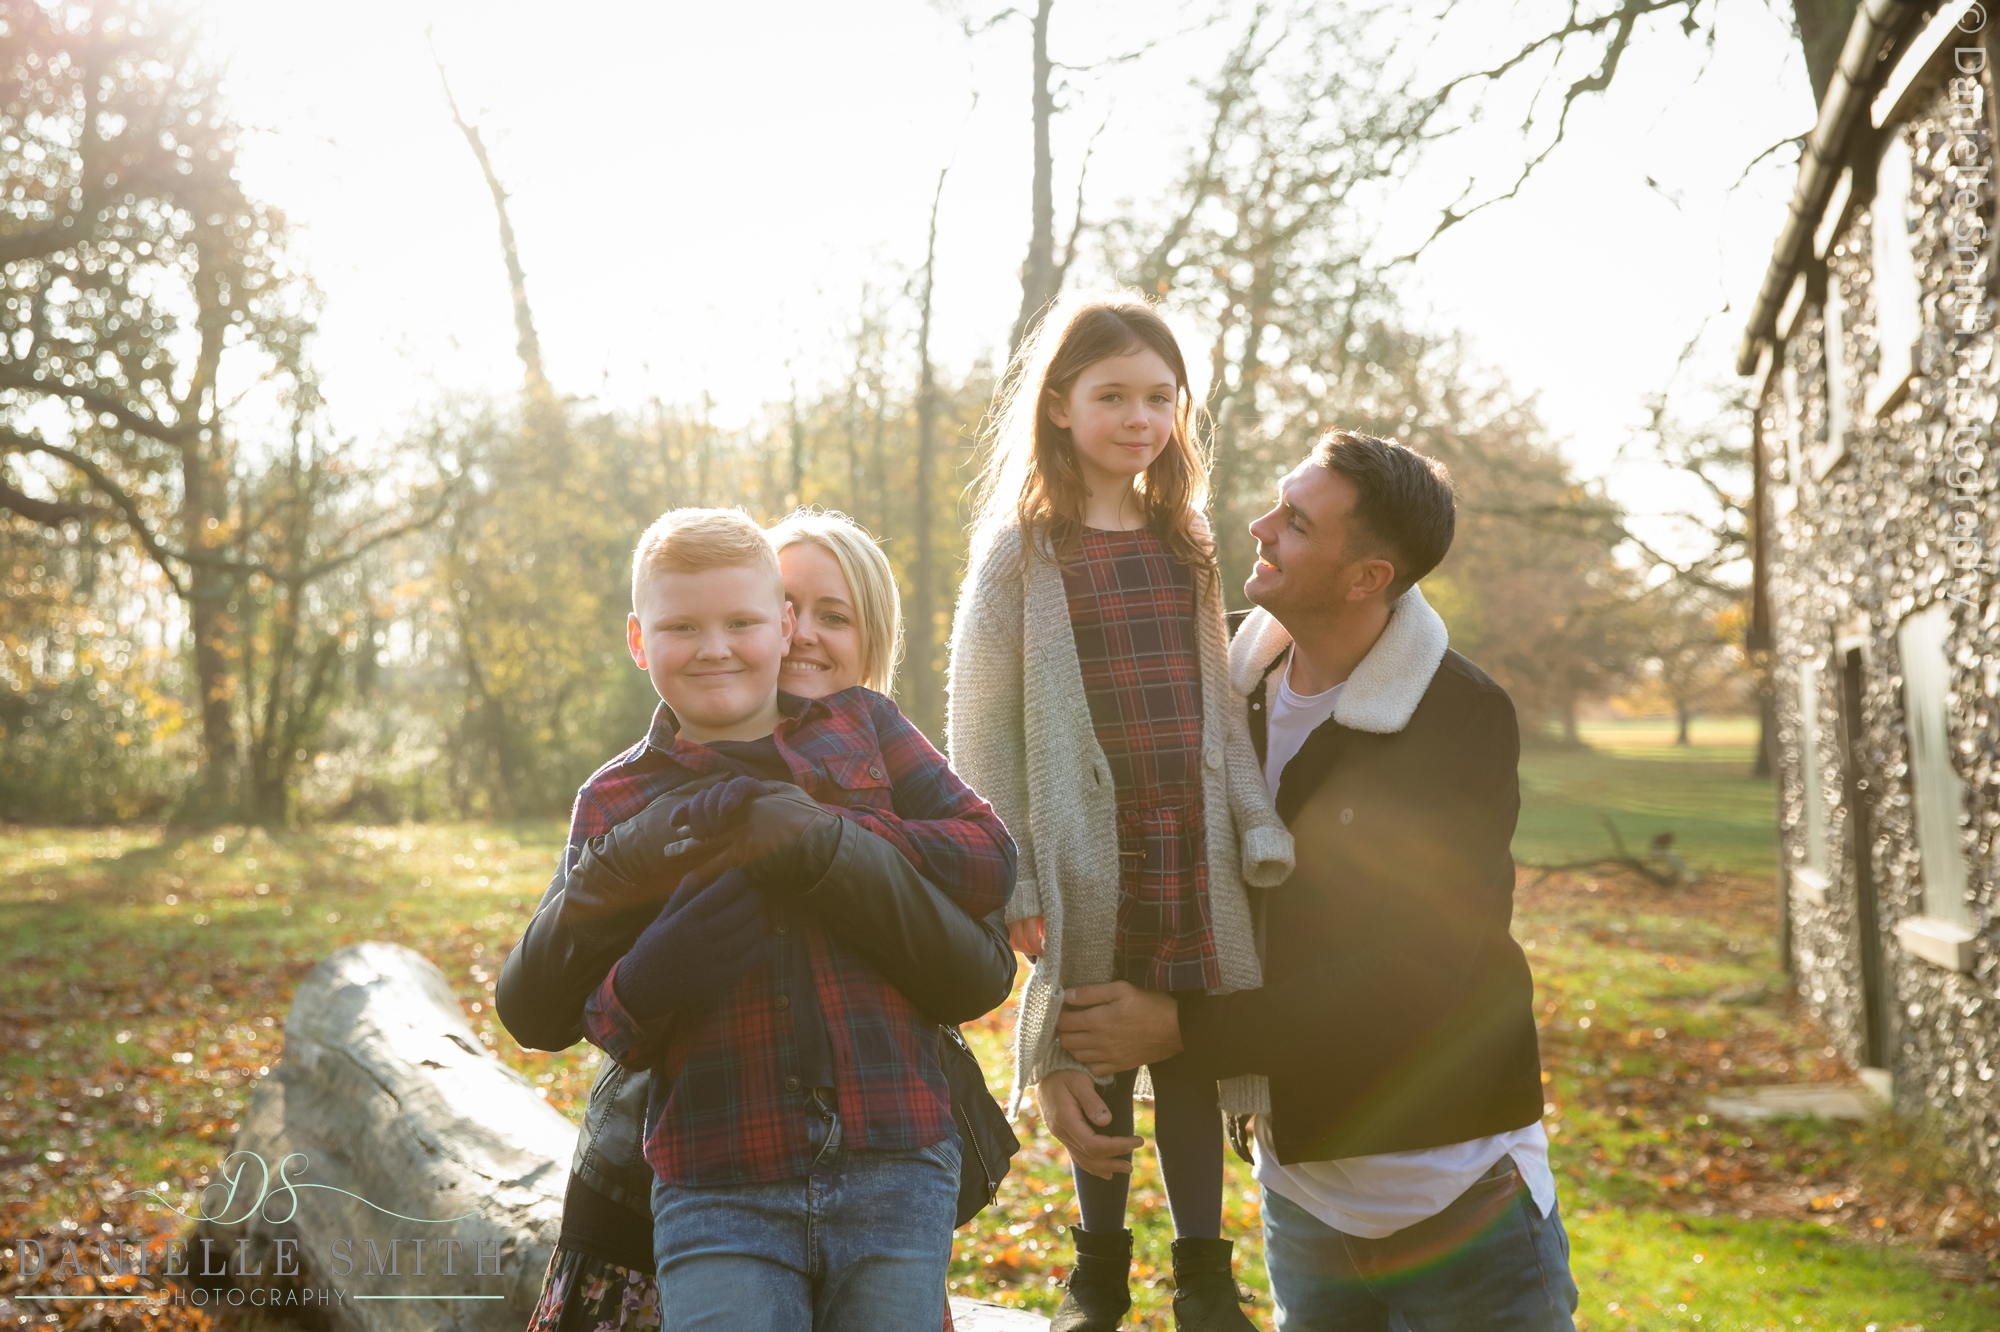 family of 4 in the park at sunset in autumn